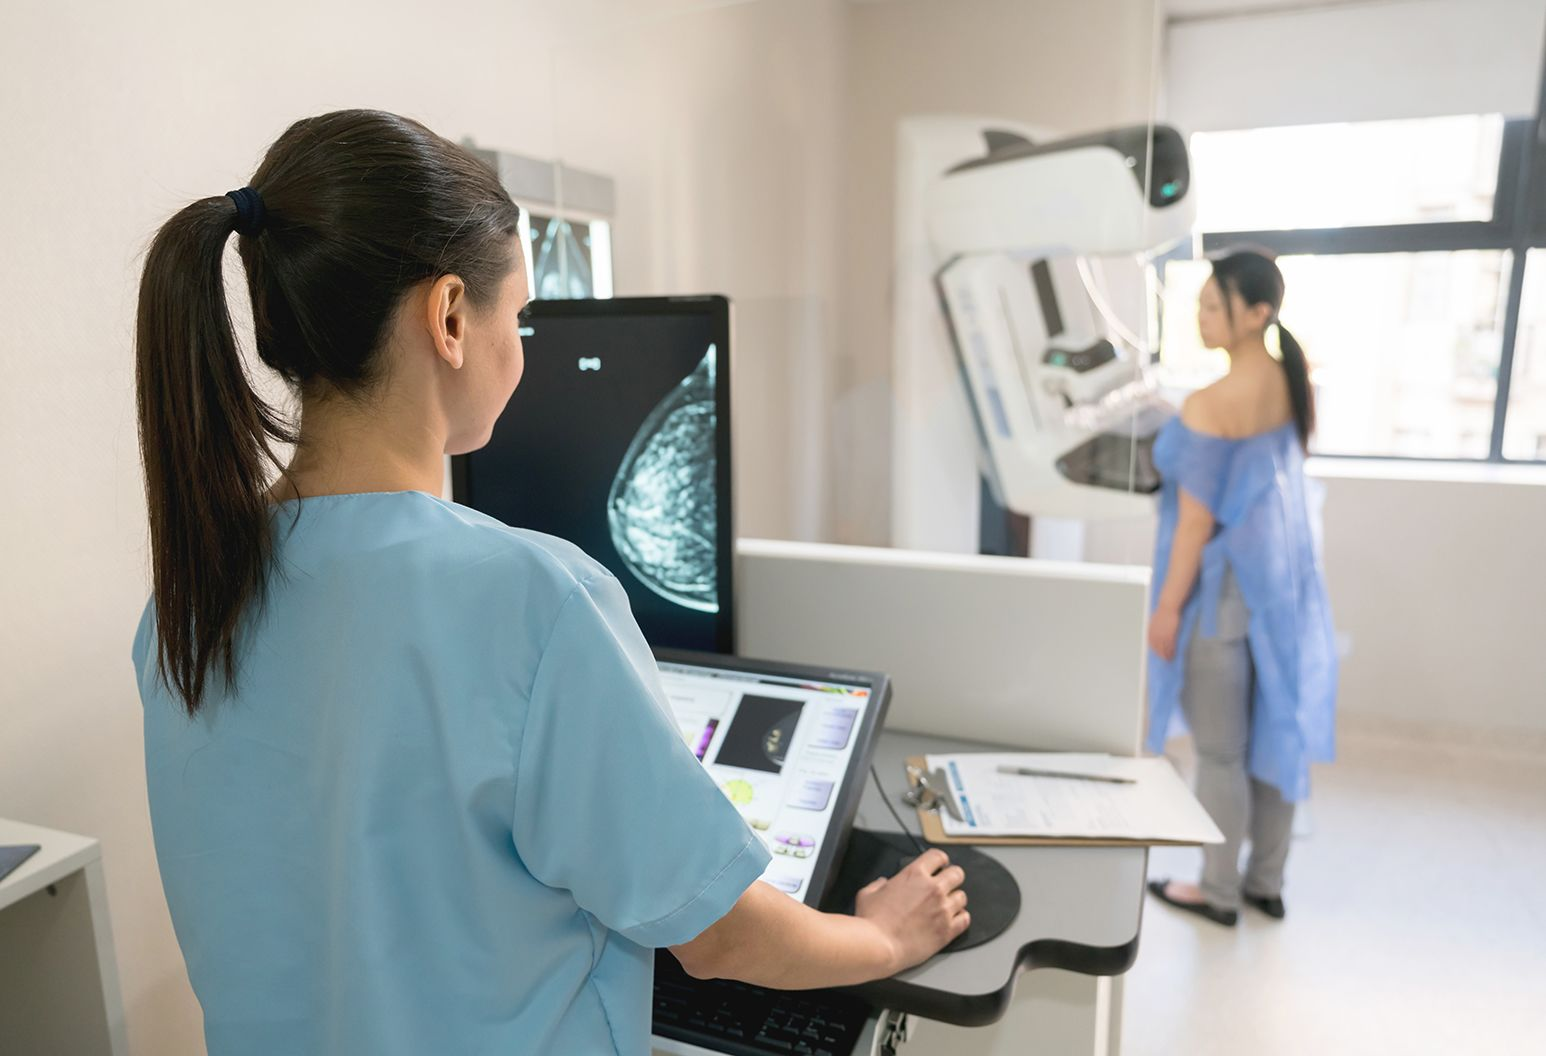 Unrecognizable nurse taking a mammogram exam to an adult patient at the hospital